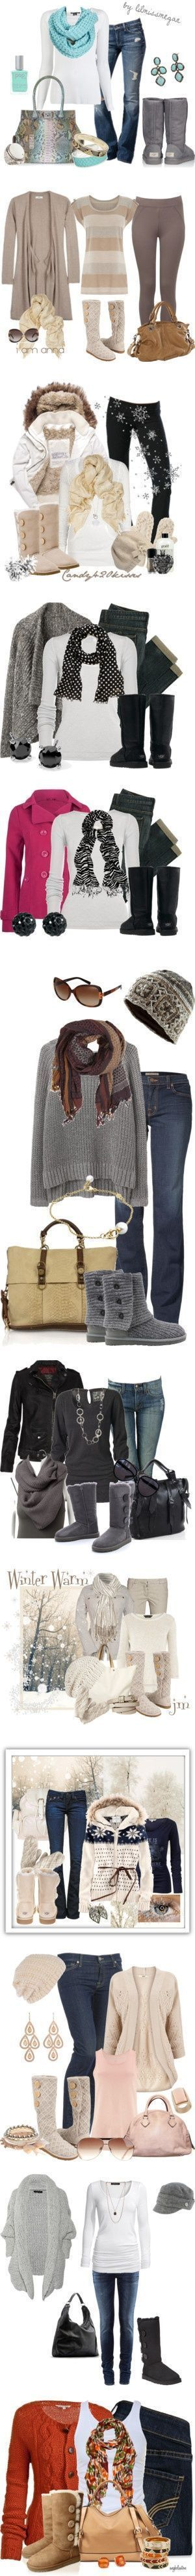 It's the first day of winter and what could be a better way to beat the cold temperatures than a cozy pair of everyone's love at winter - Ugg boots